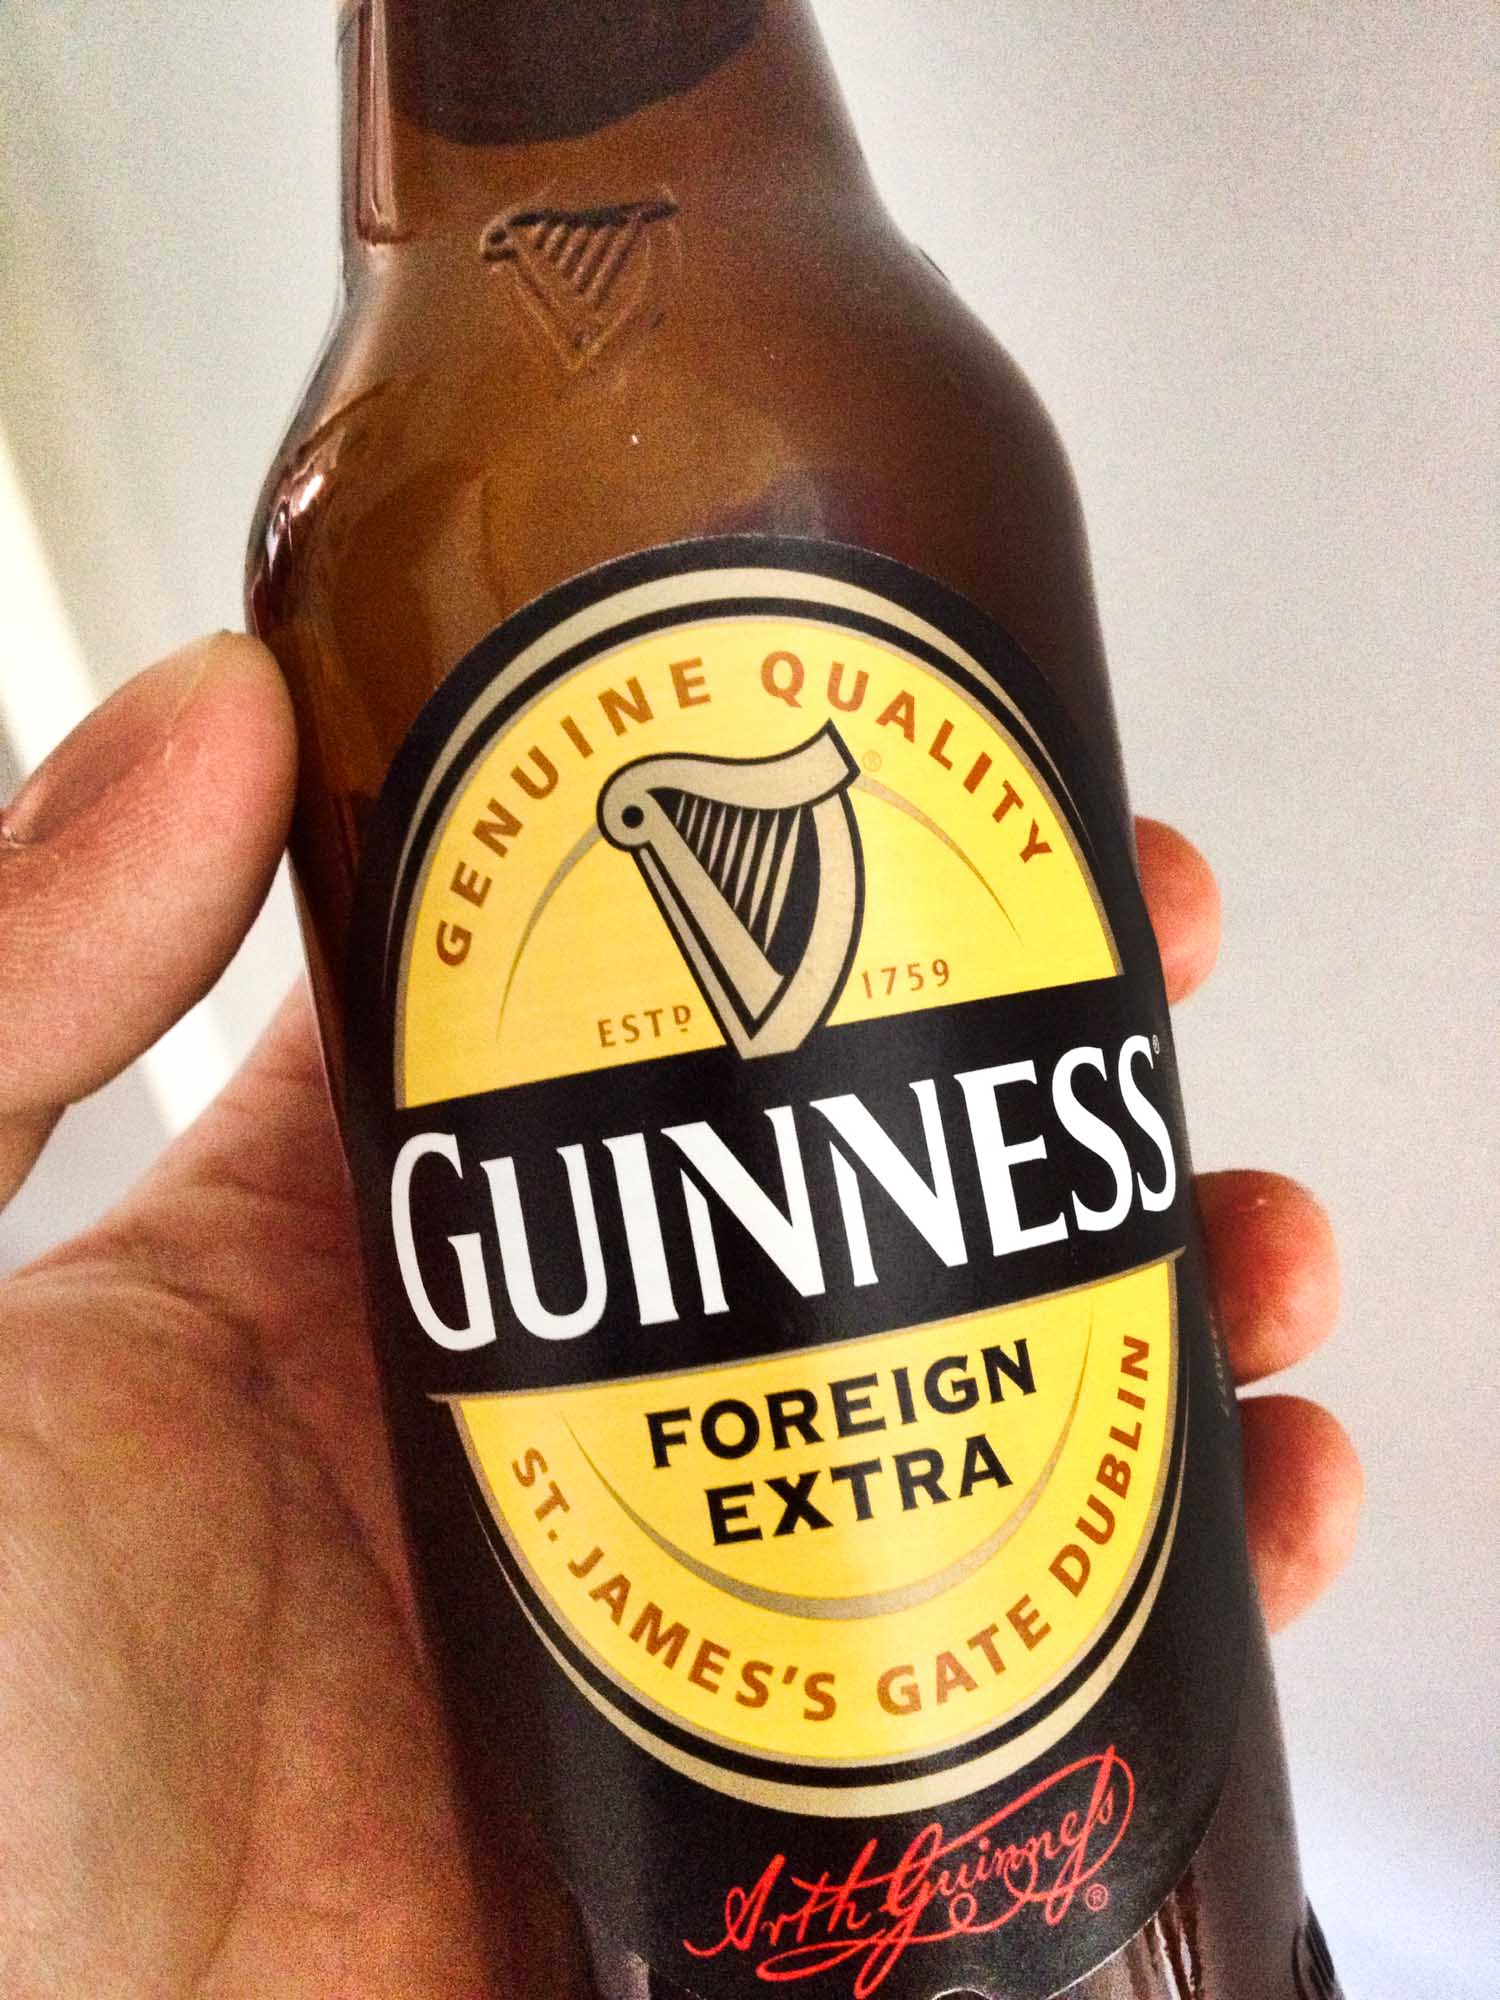 Bottle of Guinness Foreign Extra